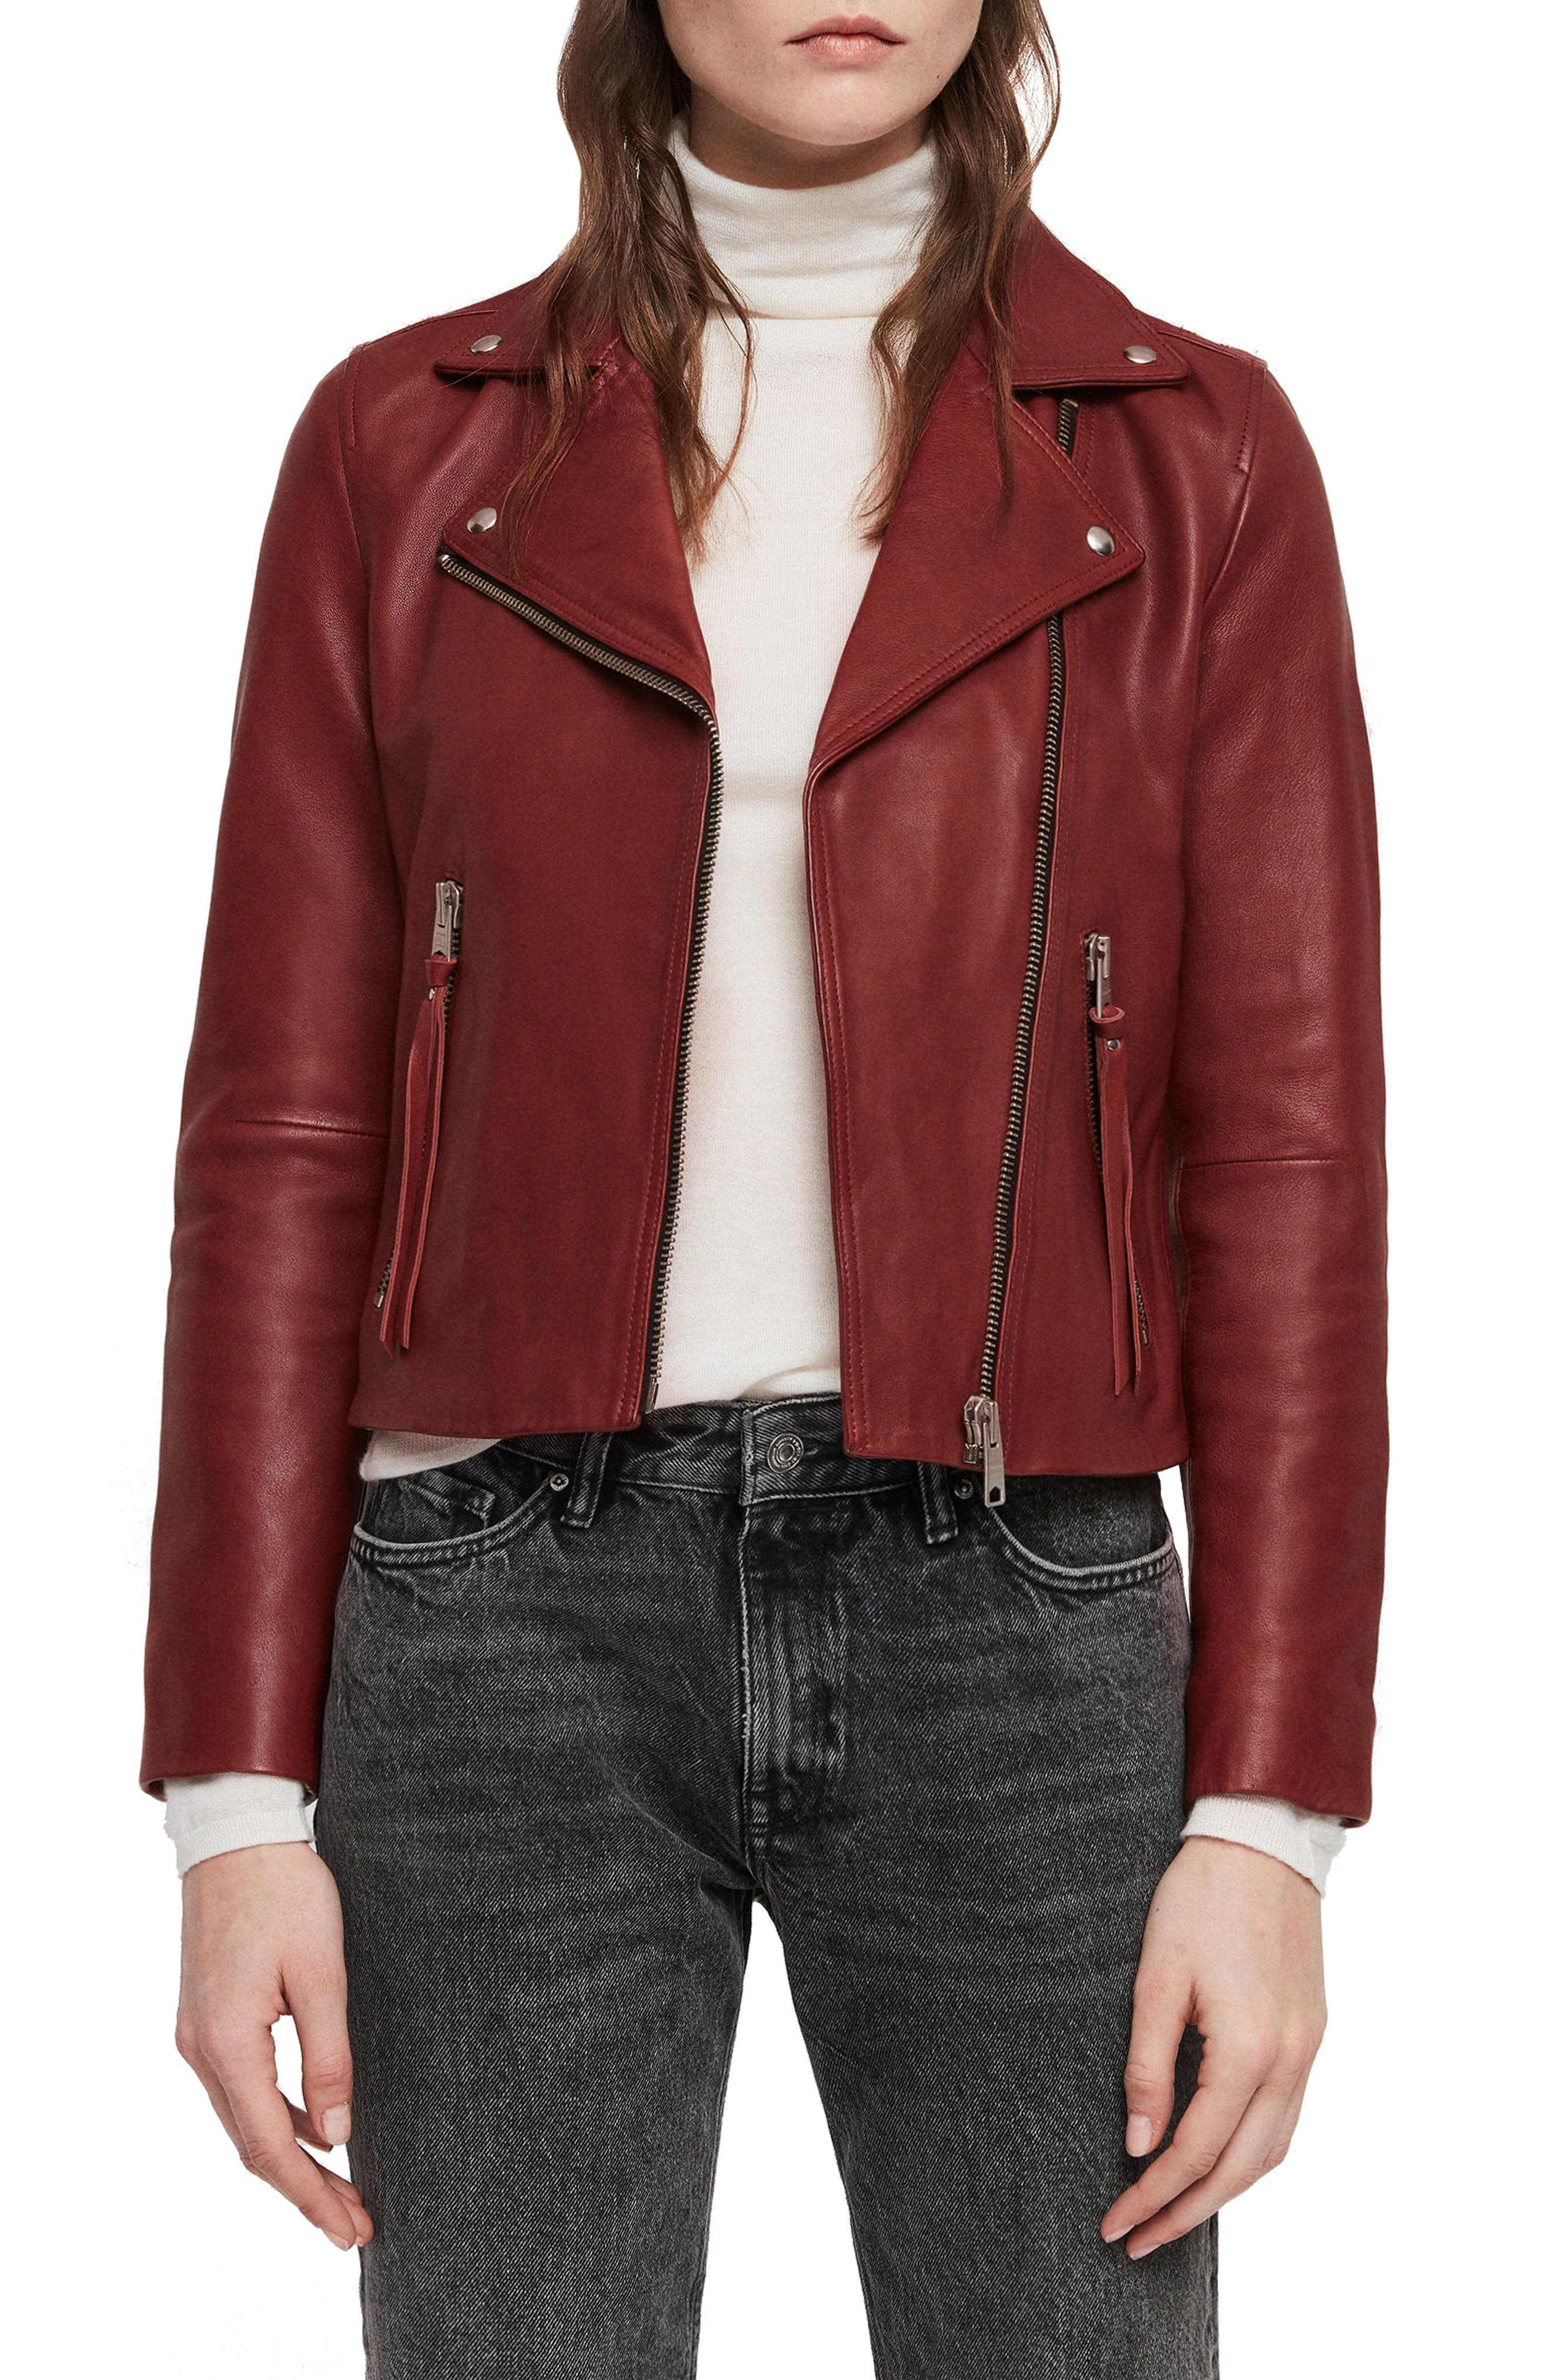 Allsaints Dalby Red Leather Jacket